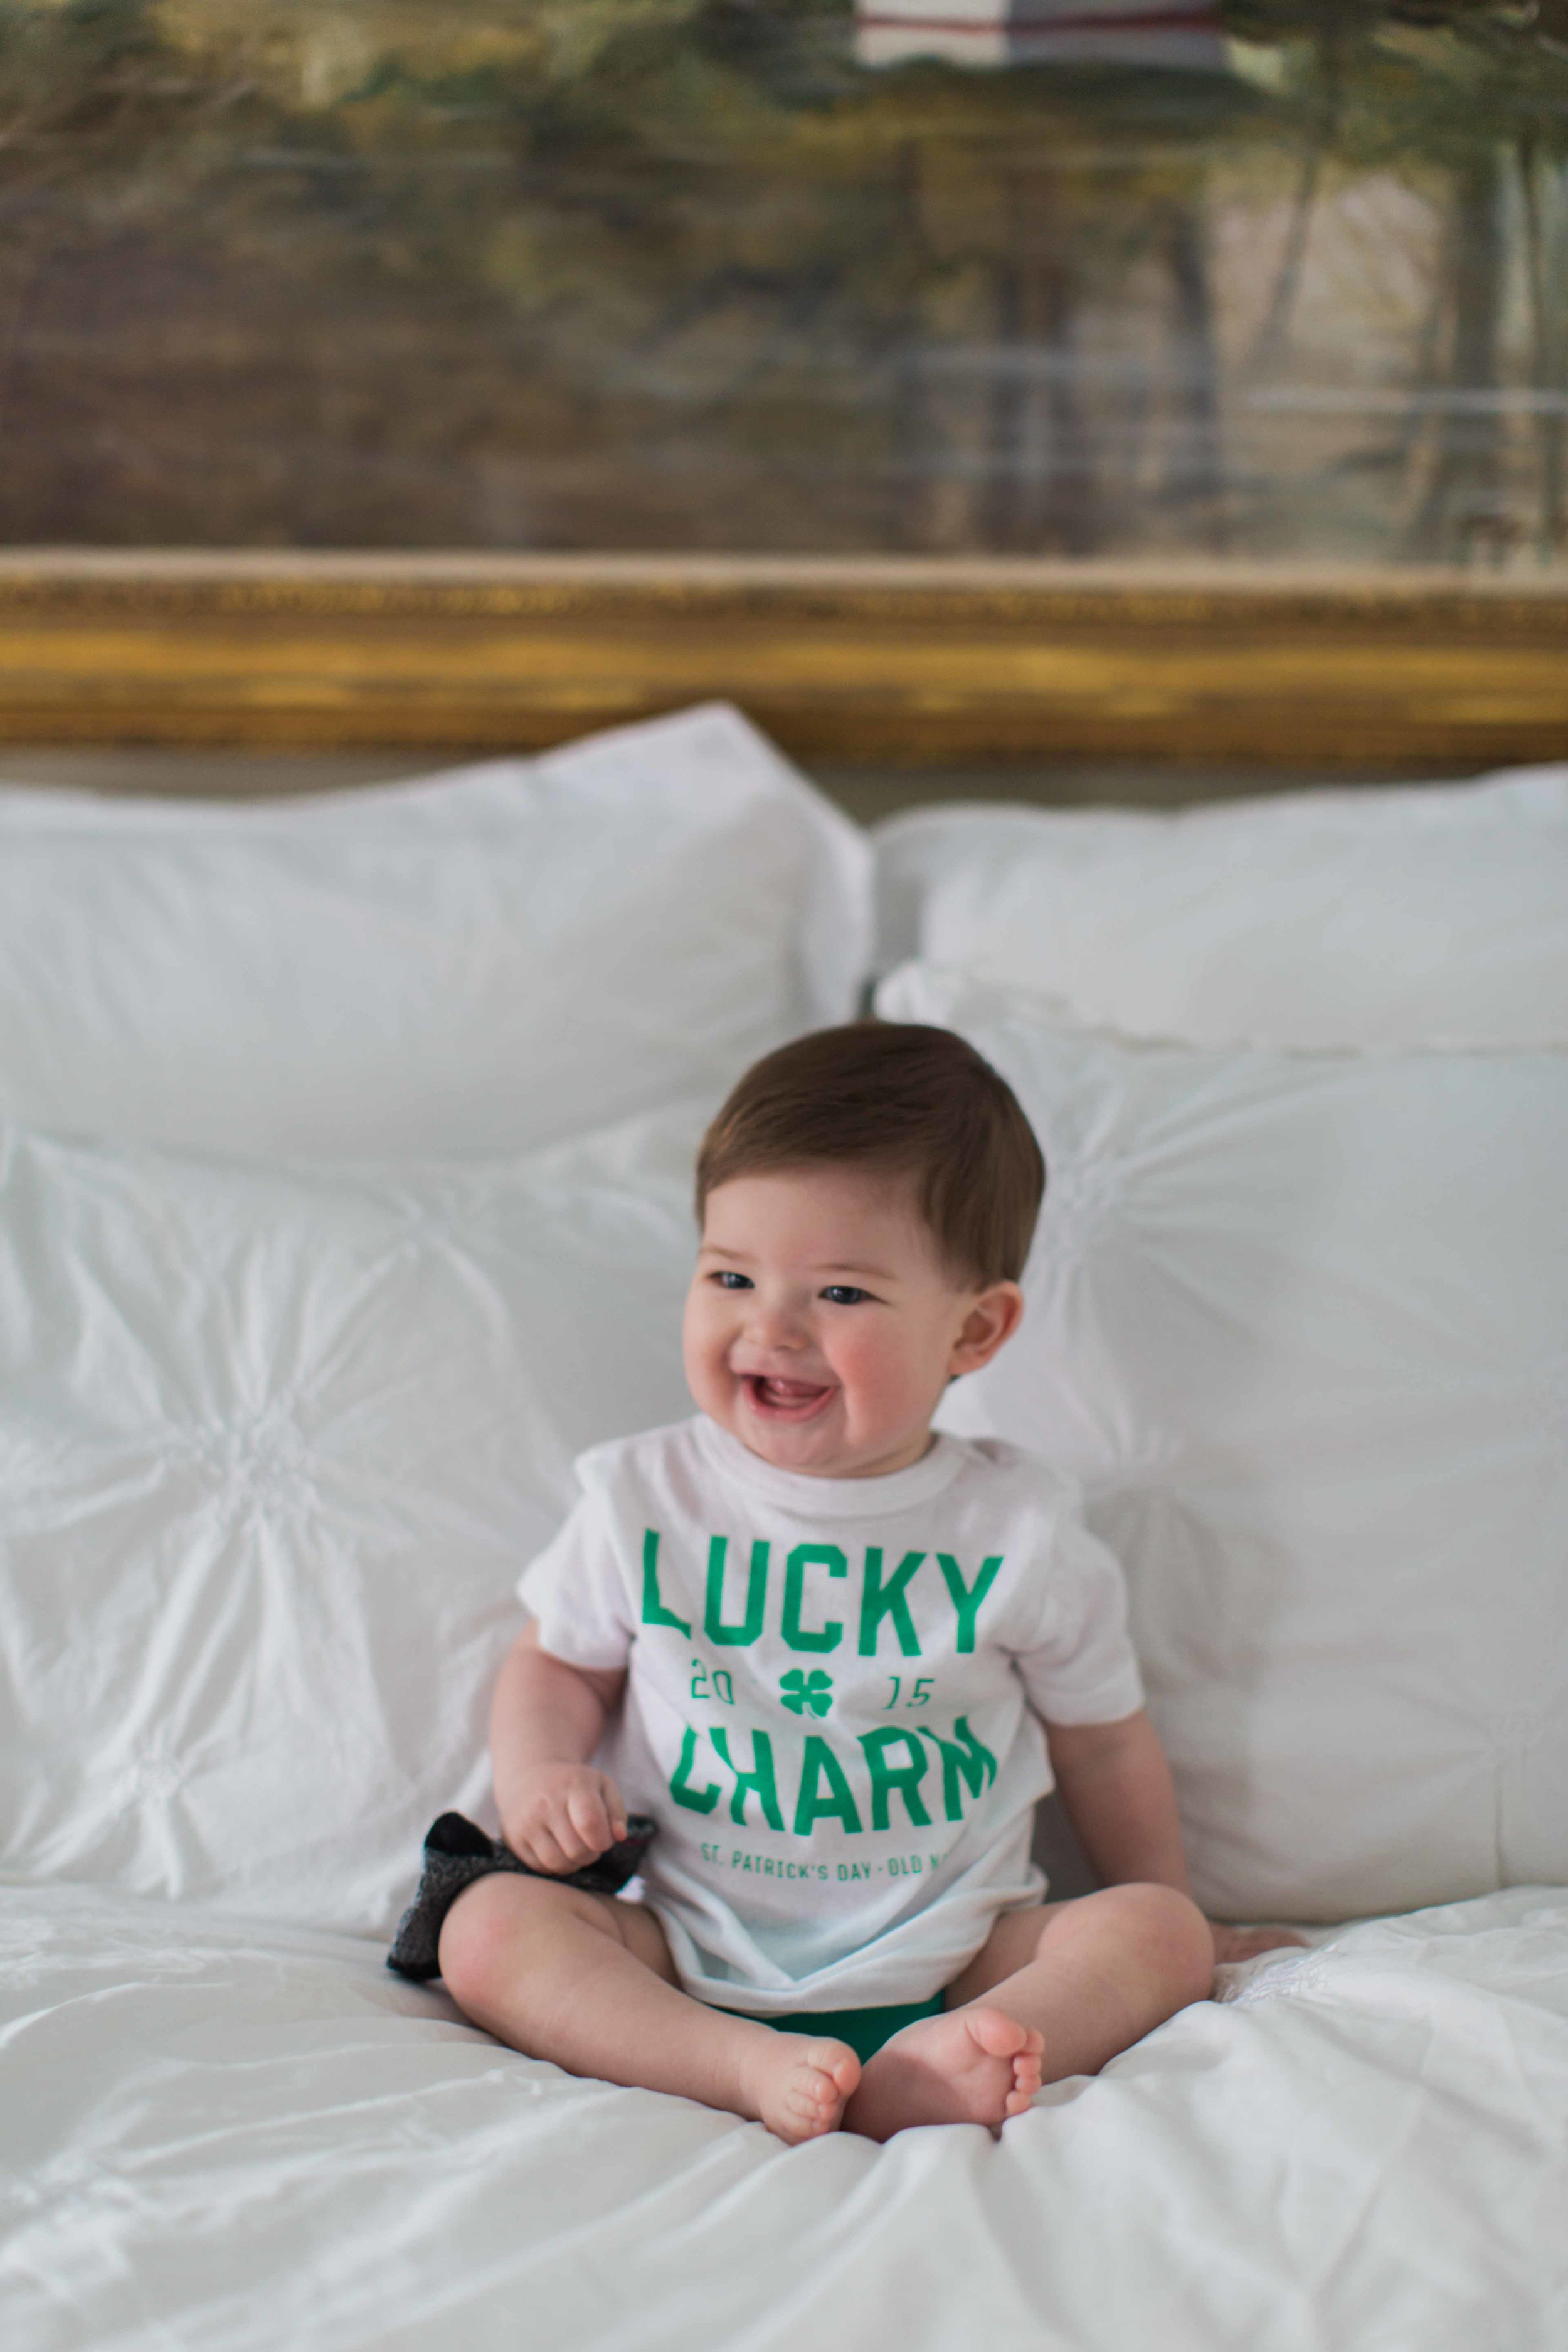 You can't see it, but he is sporting a really cute green Bum Genius 4.0 diaper with his St. Patrick's day t-shirt